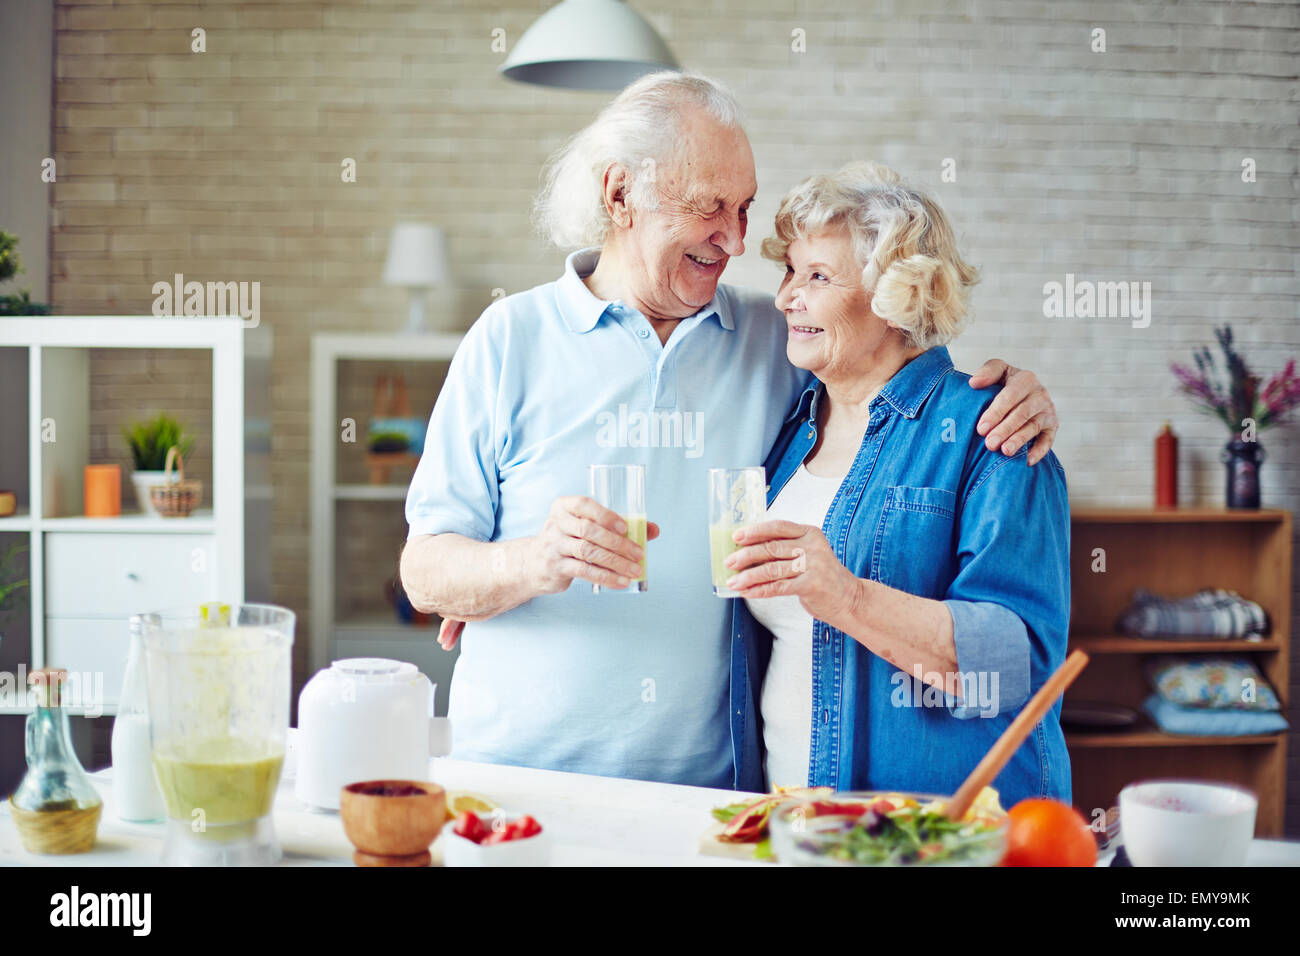 Cheering seniors with glasses of fresh smoothie - Stock Image